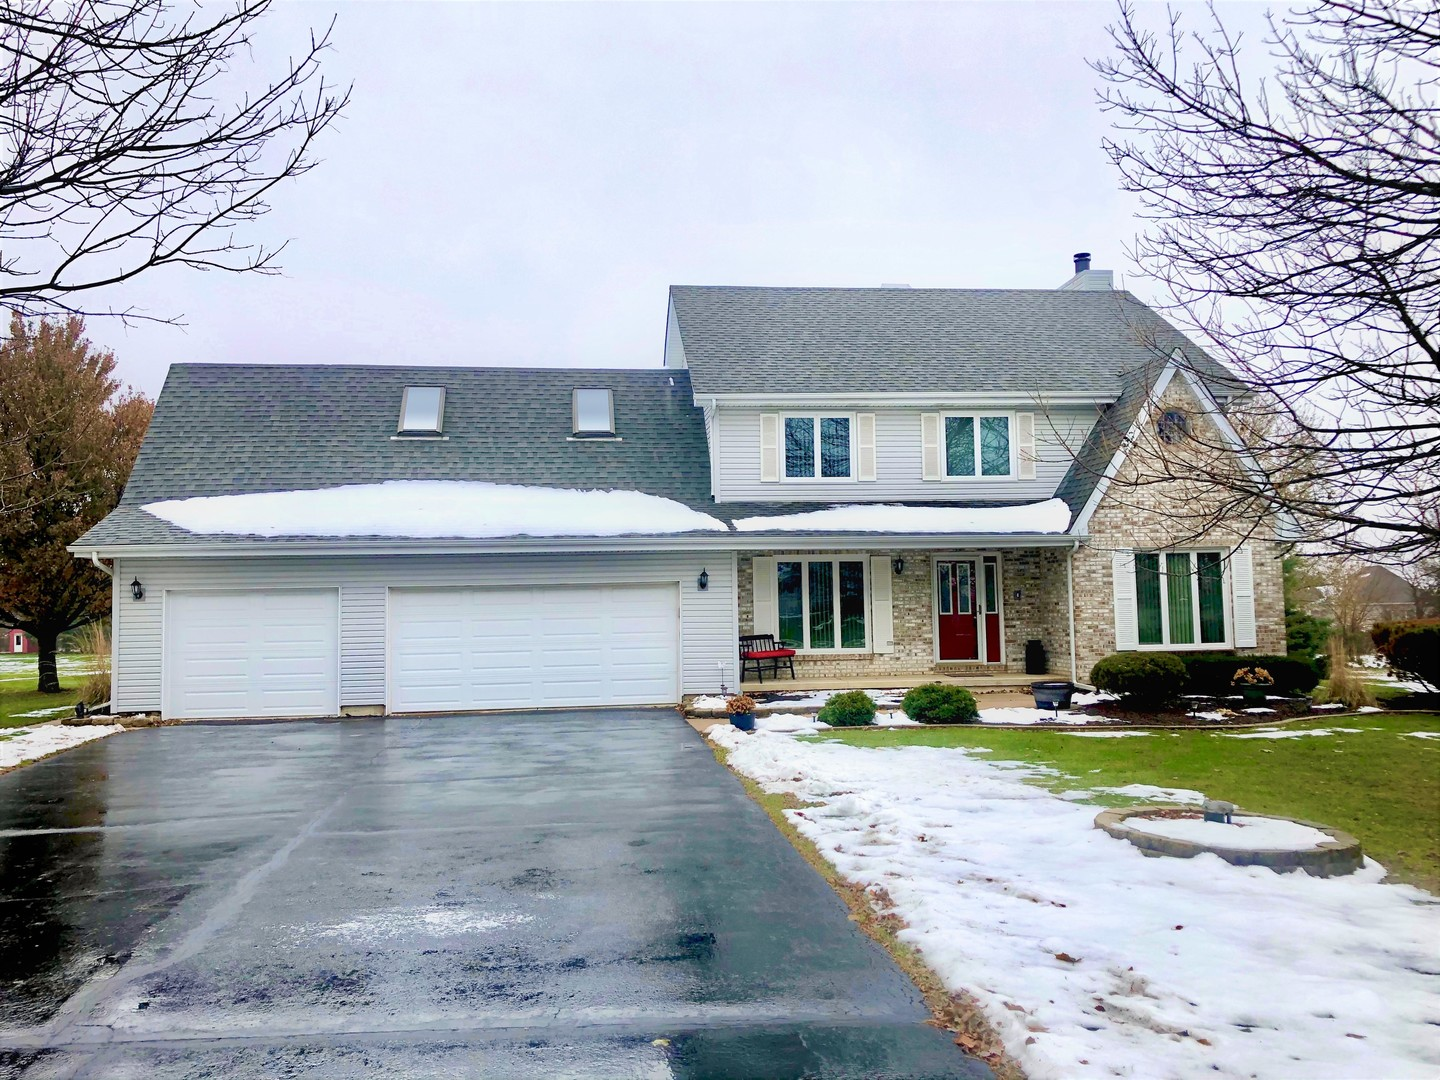 Photo for 19N232 Green Meadows Lane, Hampshire, IL 60140 (MLS # 10583875)